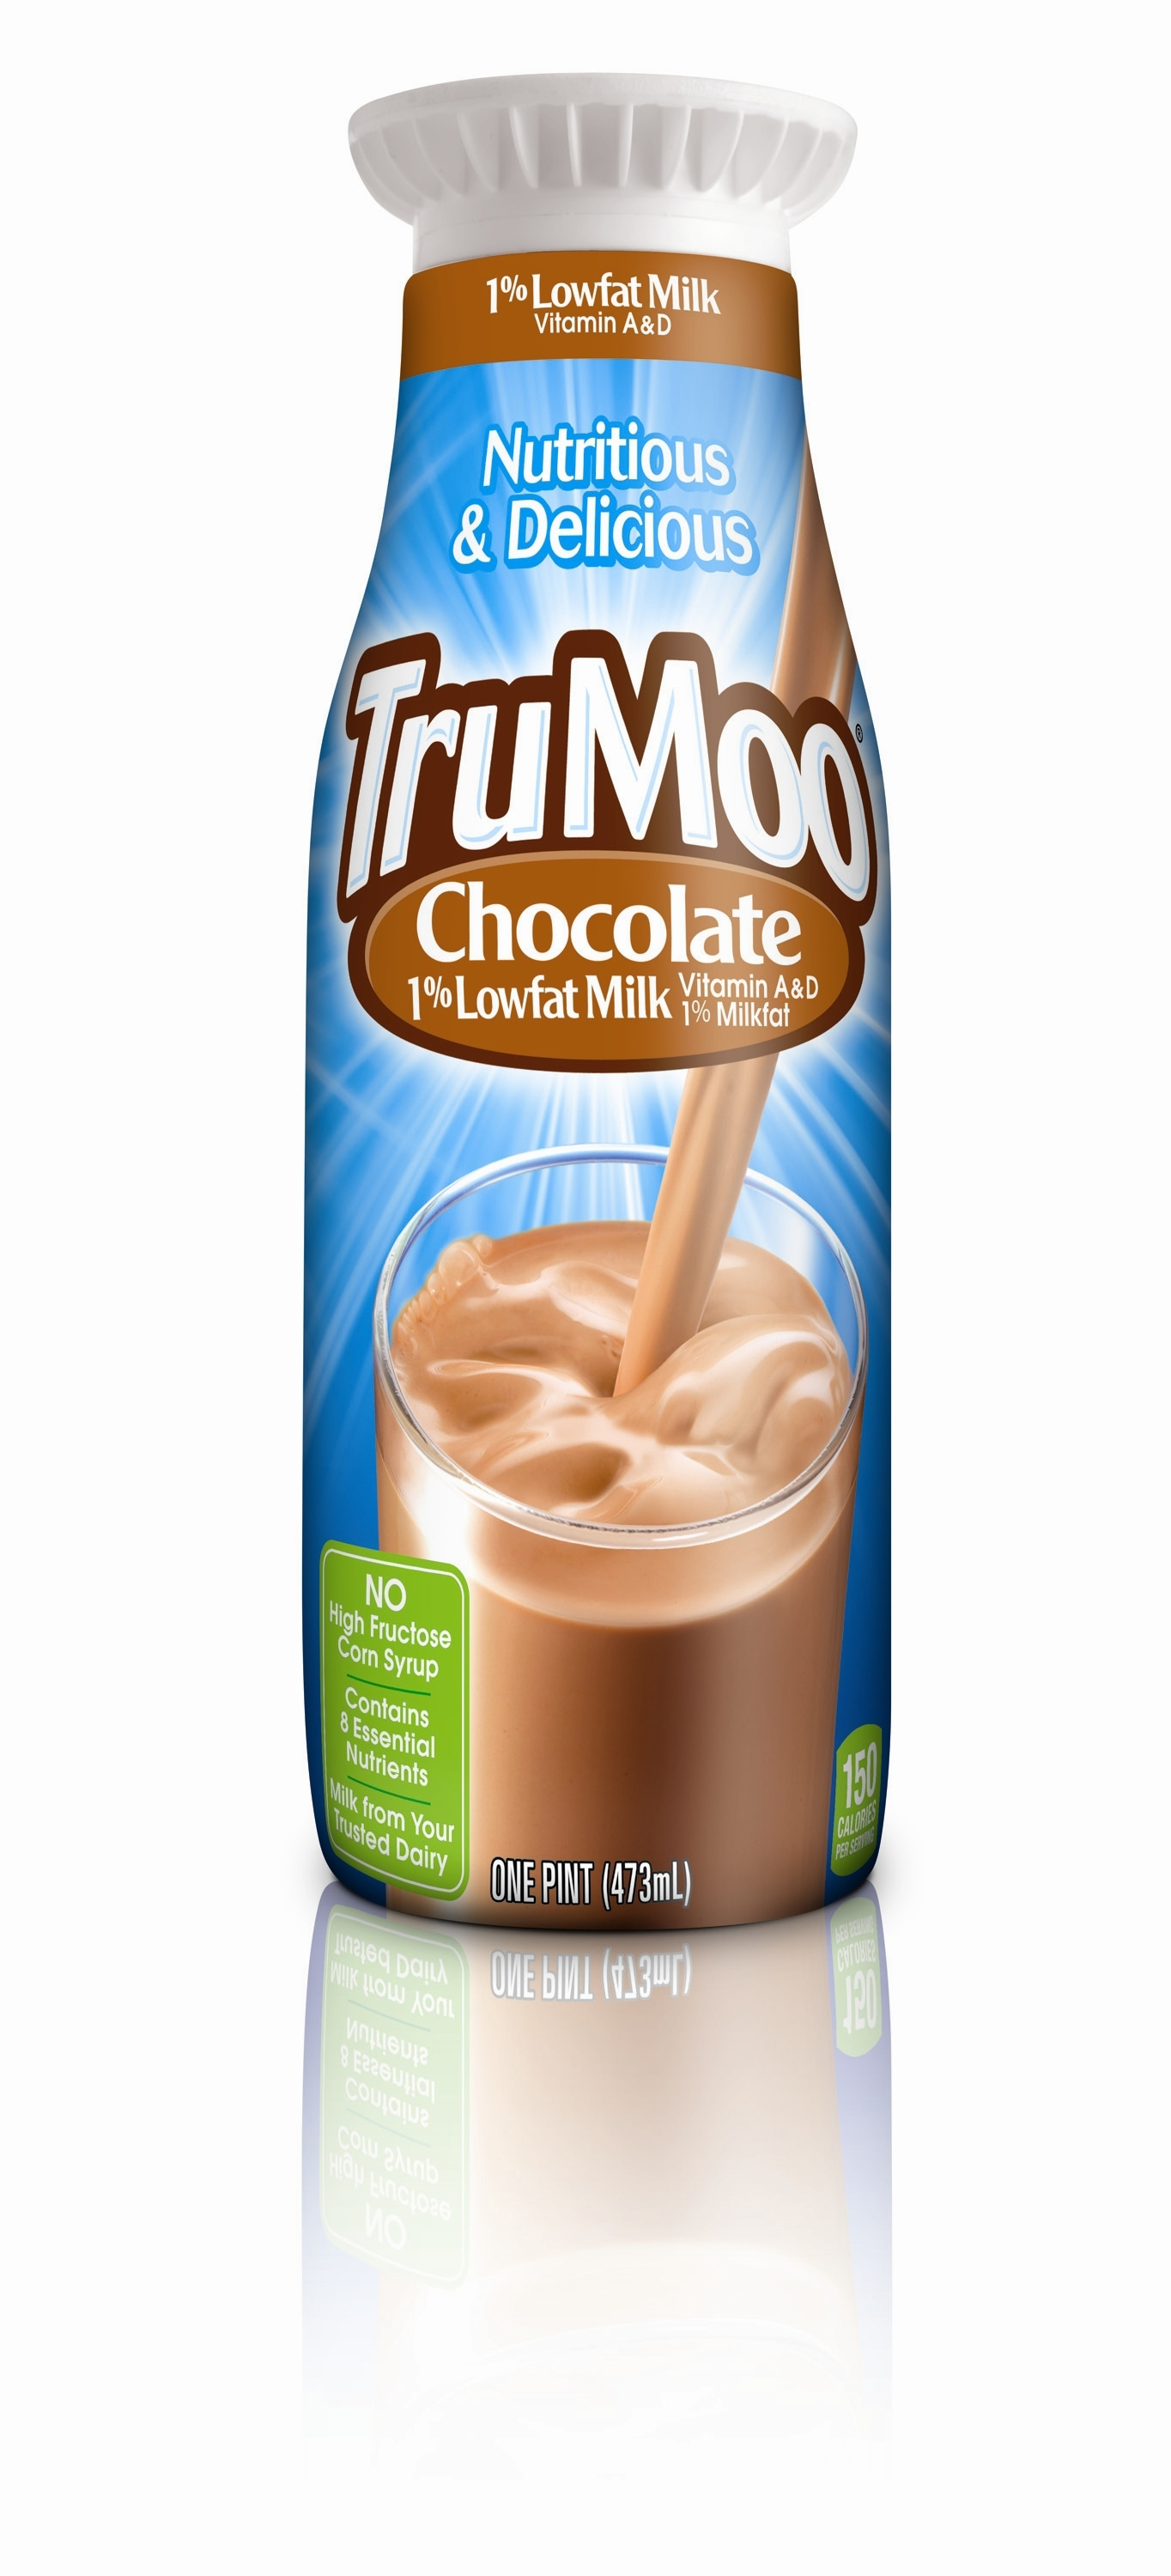 TruMoo Chocolate Milk Review